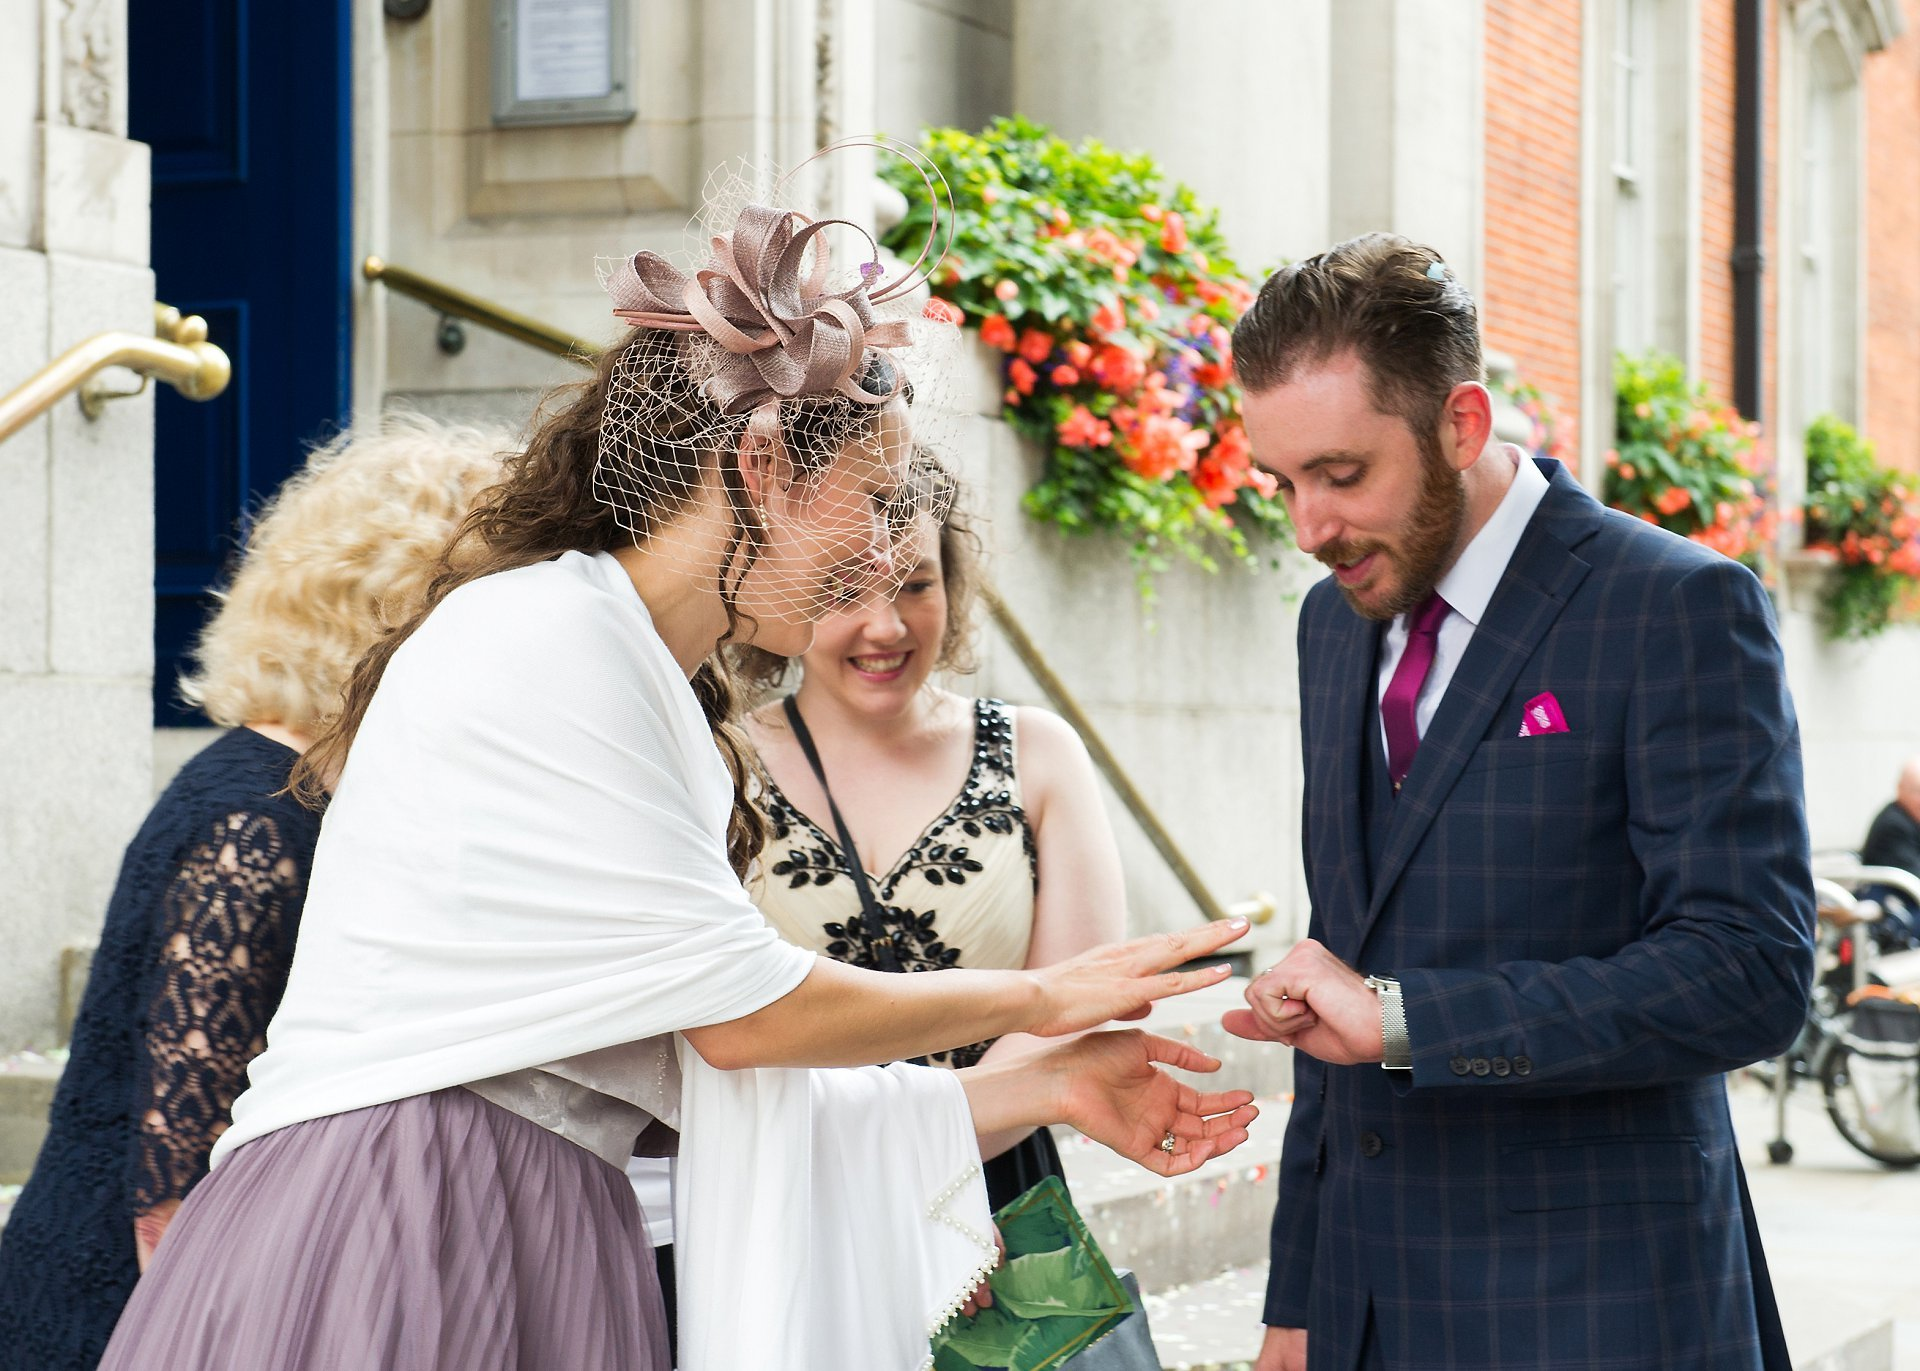 Wedding guests admire the groom's new wedding ring outside Chelsea Old Town Hall